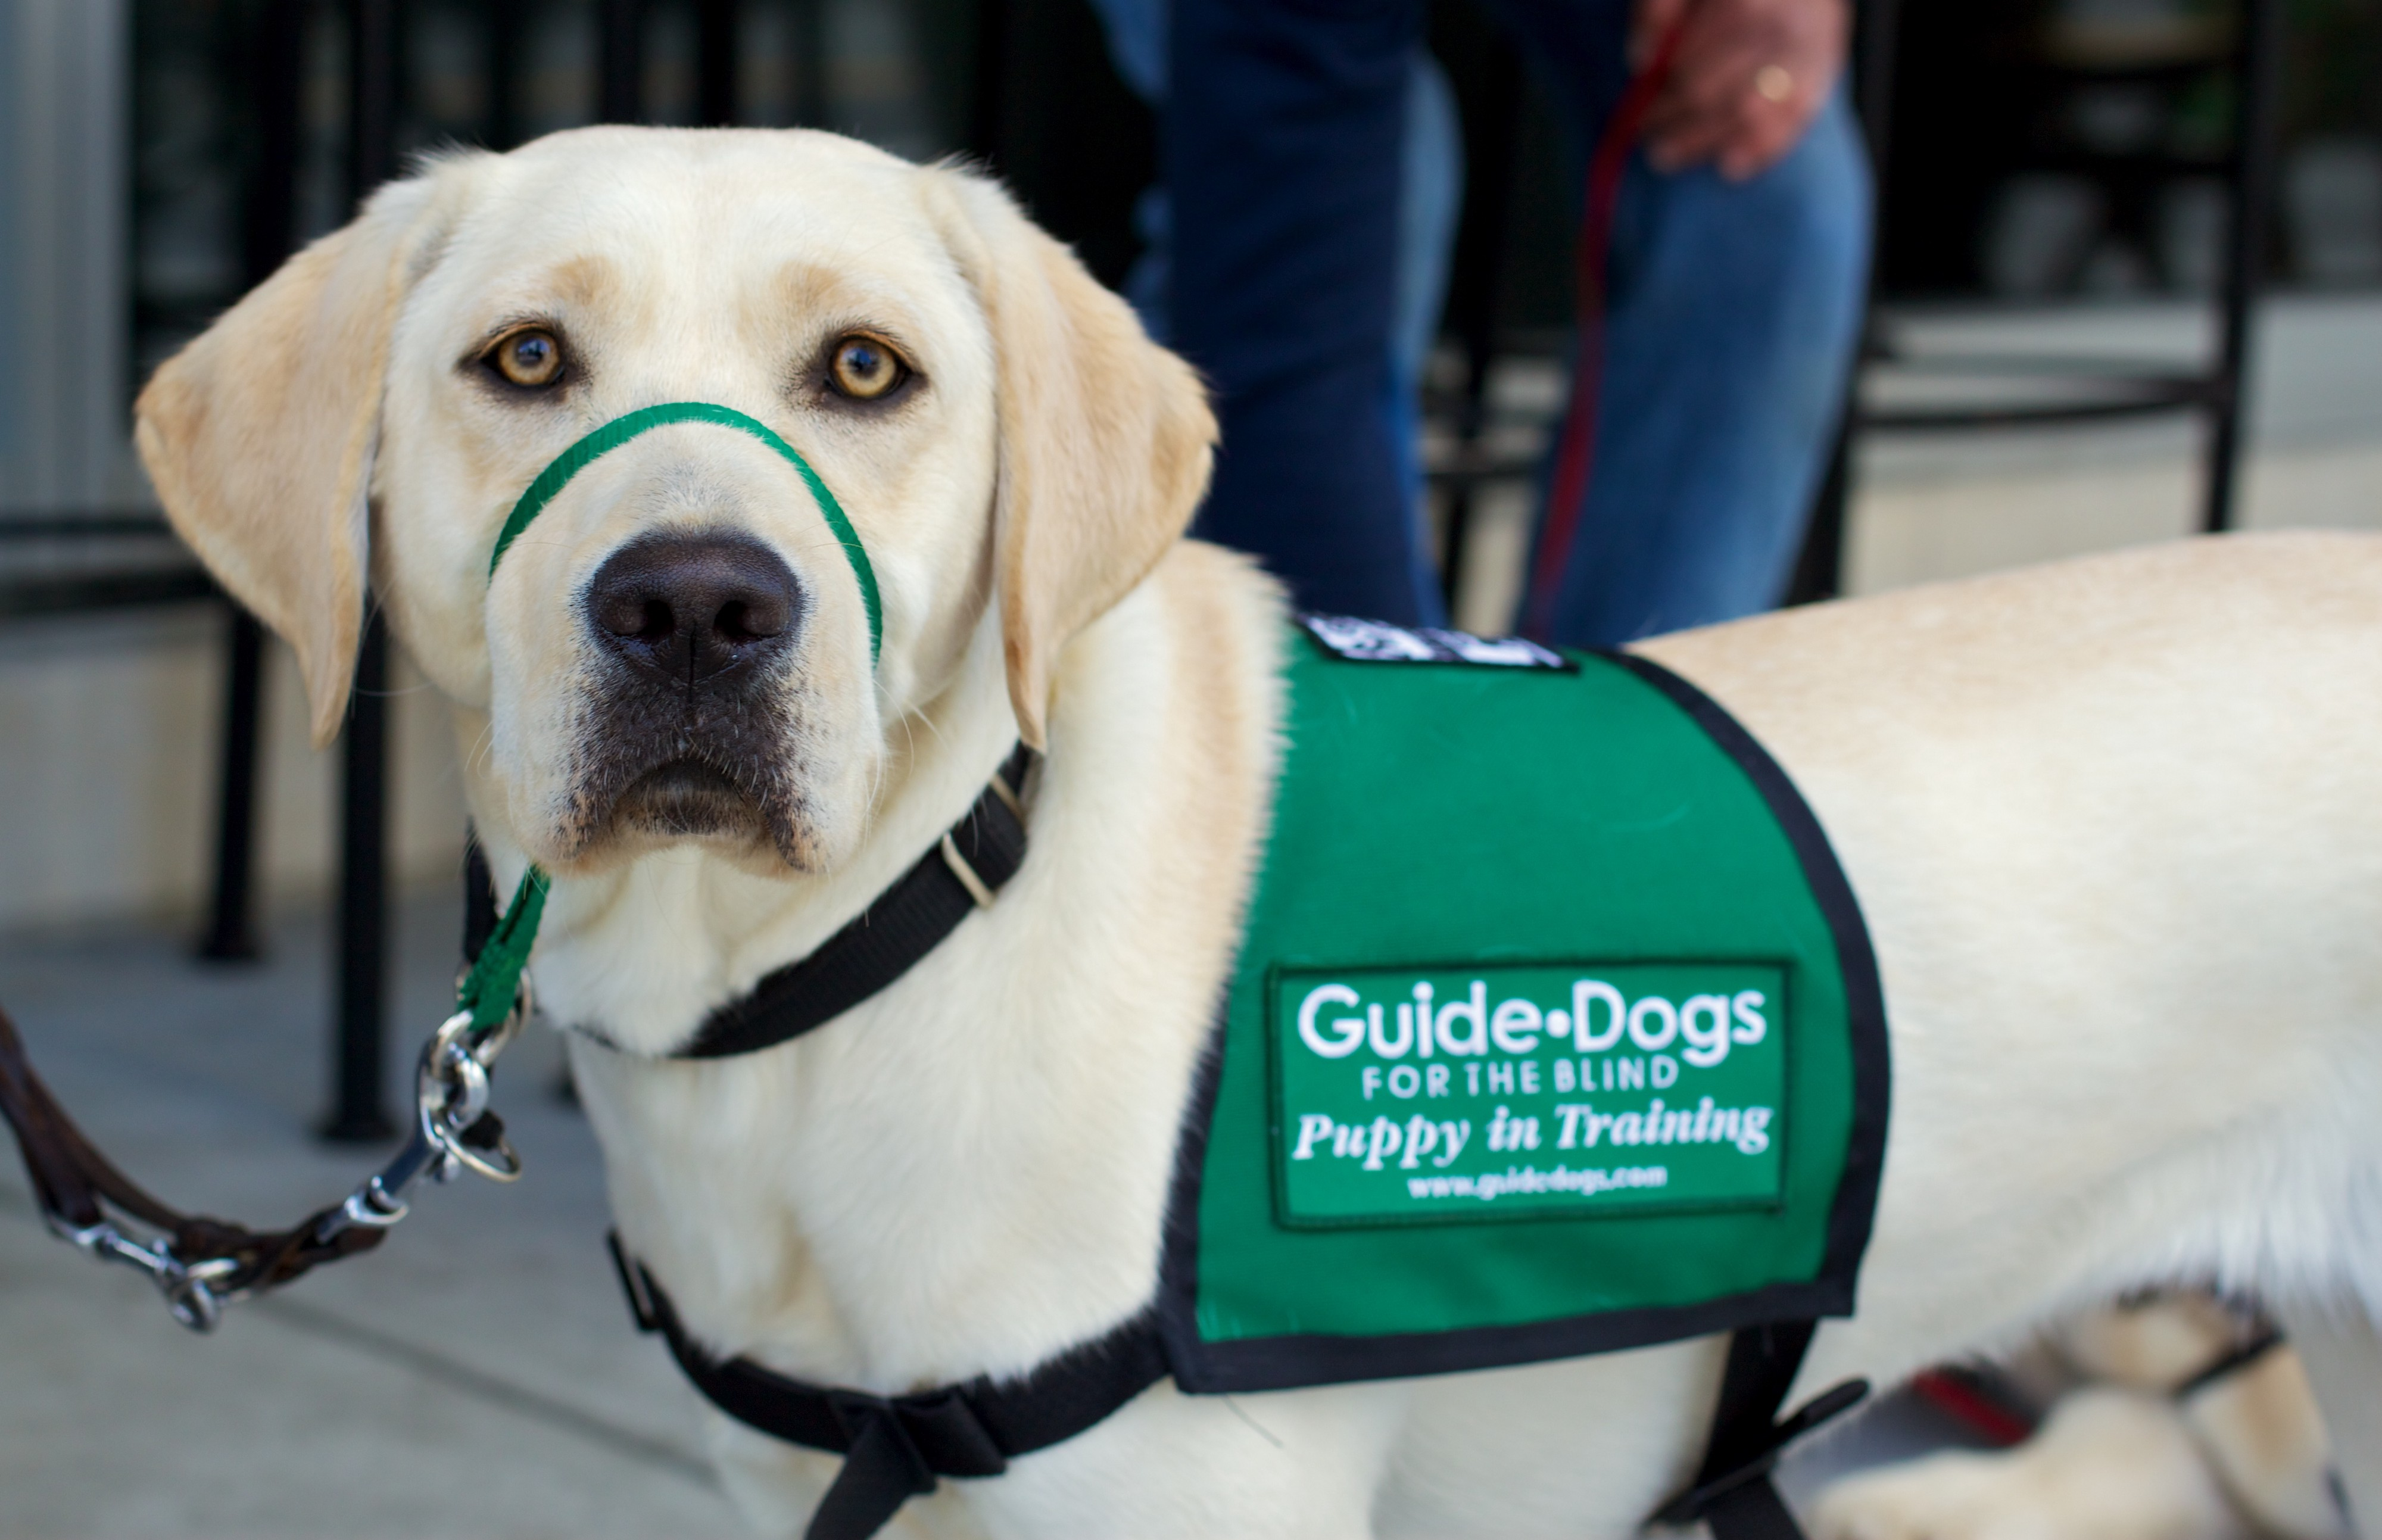 Yellow labrador Susanna wearing her Guide-Dogs for the blind, Puppy in Training vest